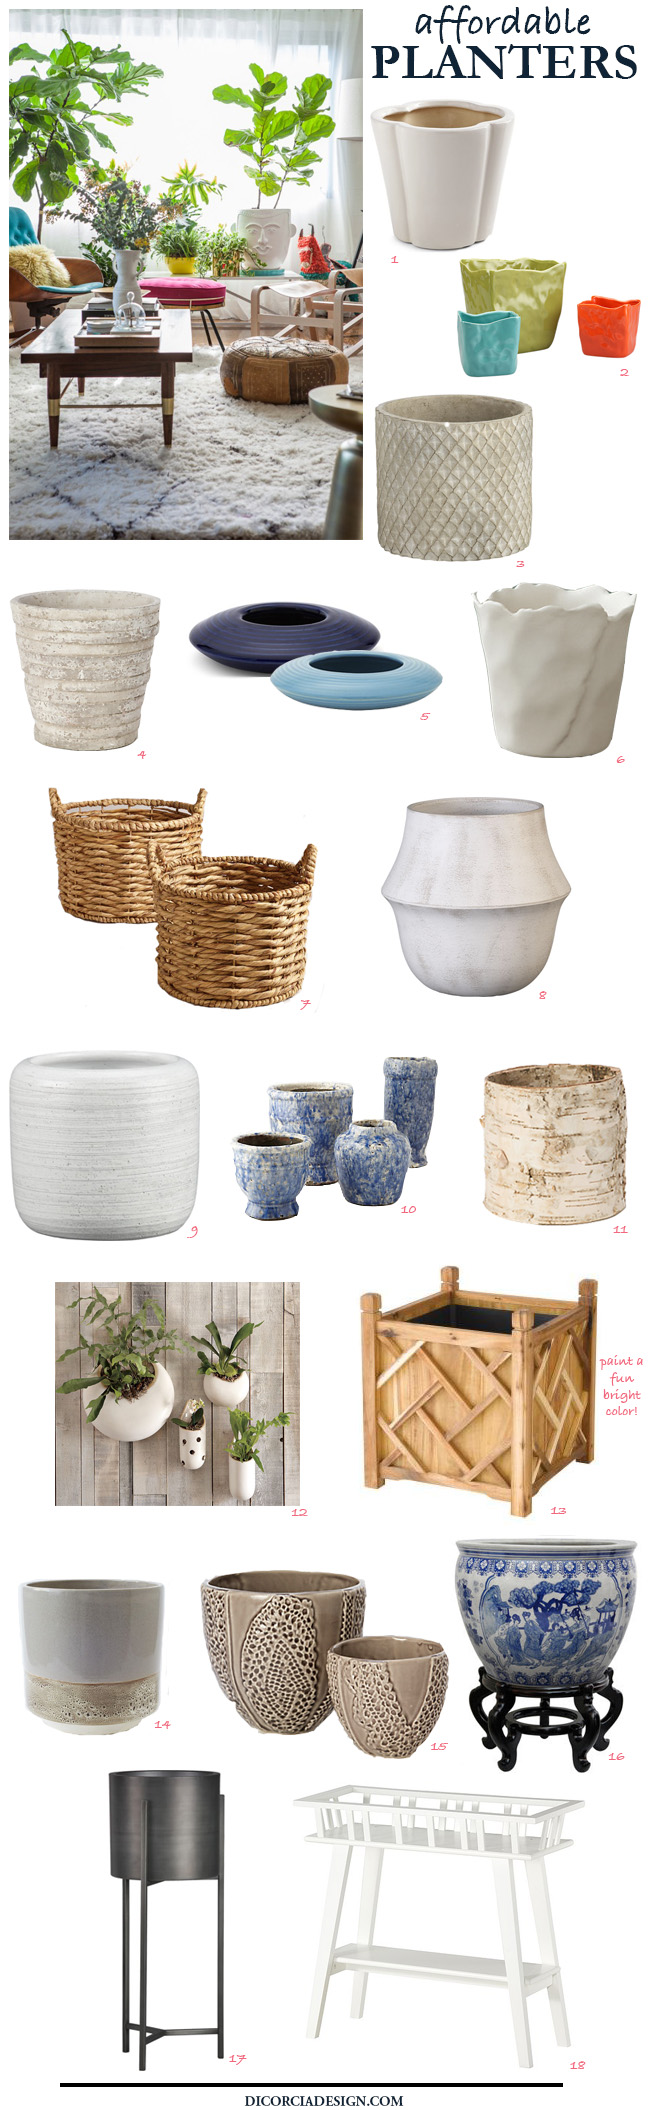 Affordable-Planters-Pots-DiCorcia-Interior-Design